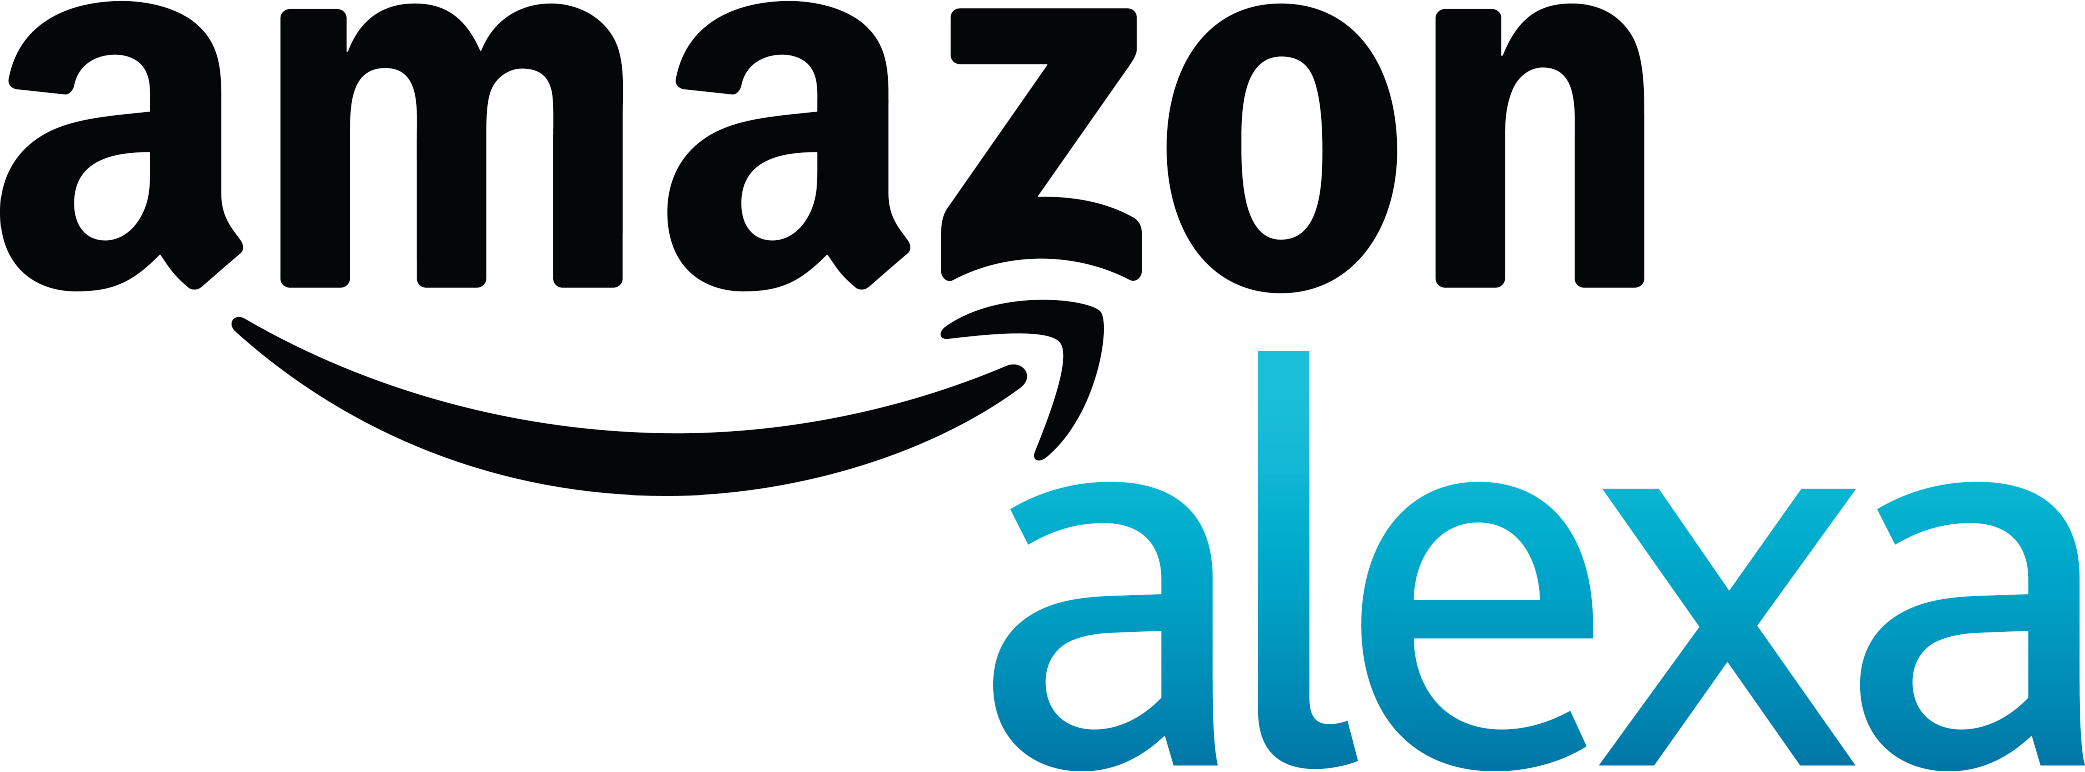 69-695336_products-amazon-alexa-logo-amazon-alexa-logo-png.png